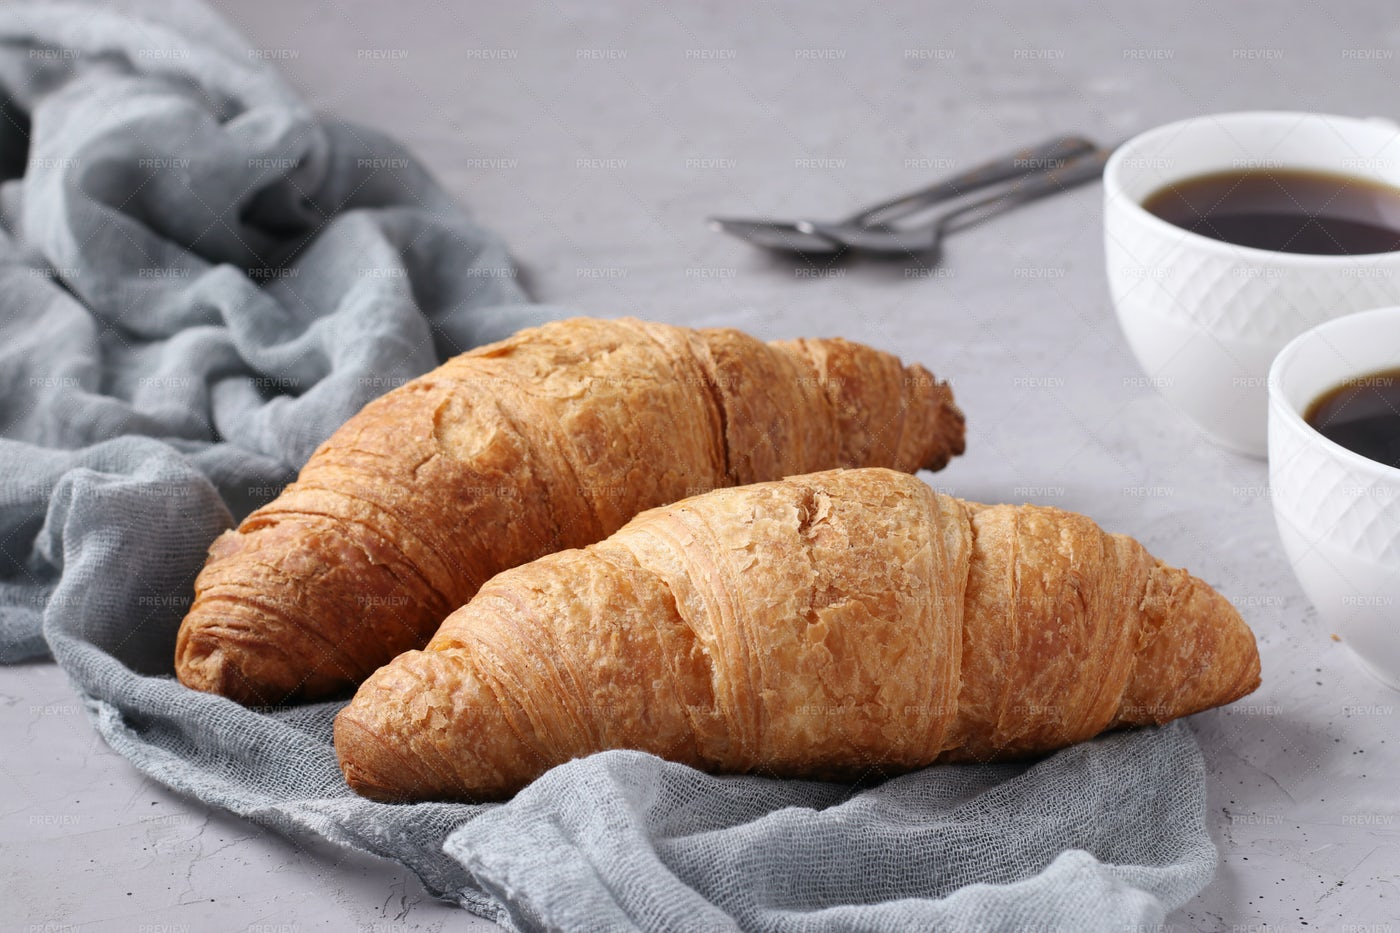 Croissants And Cups Of Coffee: Stock Photos